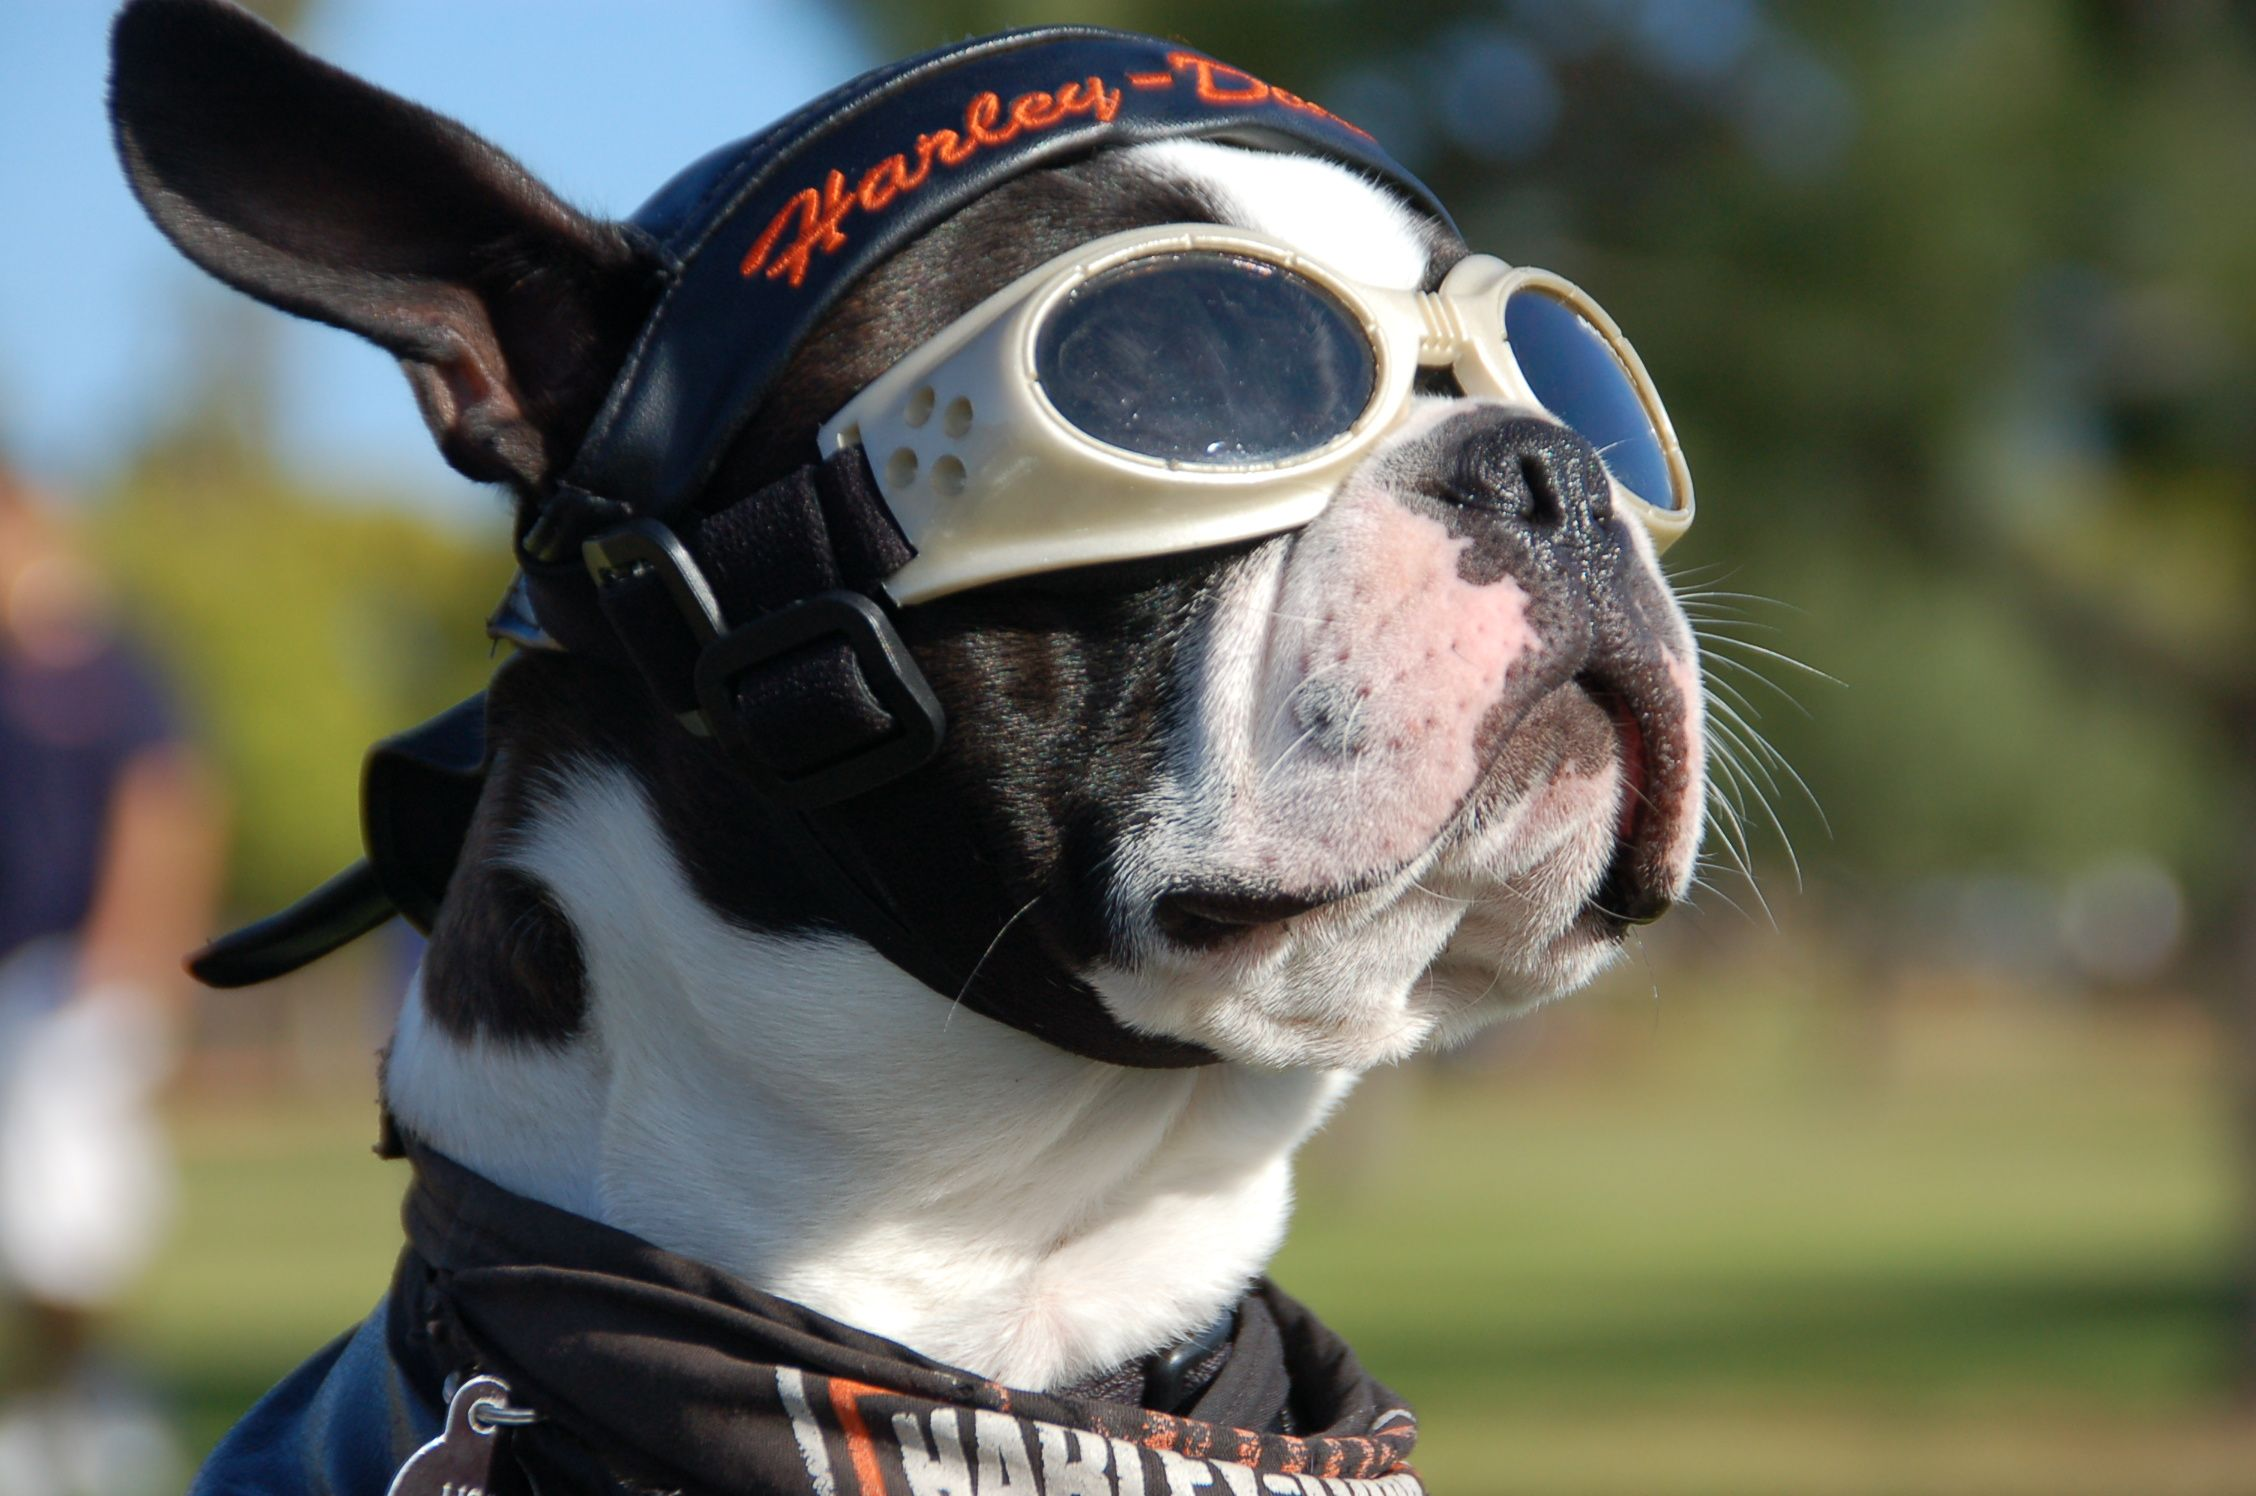 bulldog helmet biker french bulldog vanessa stephen s wedding ideas 925